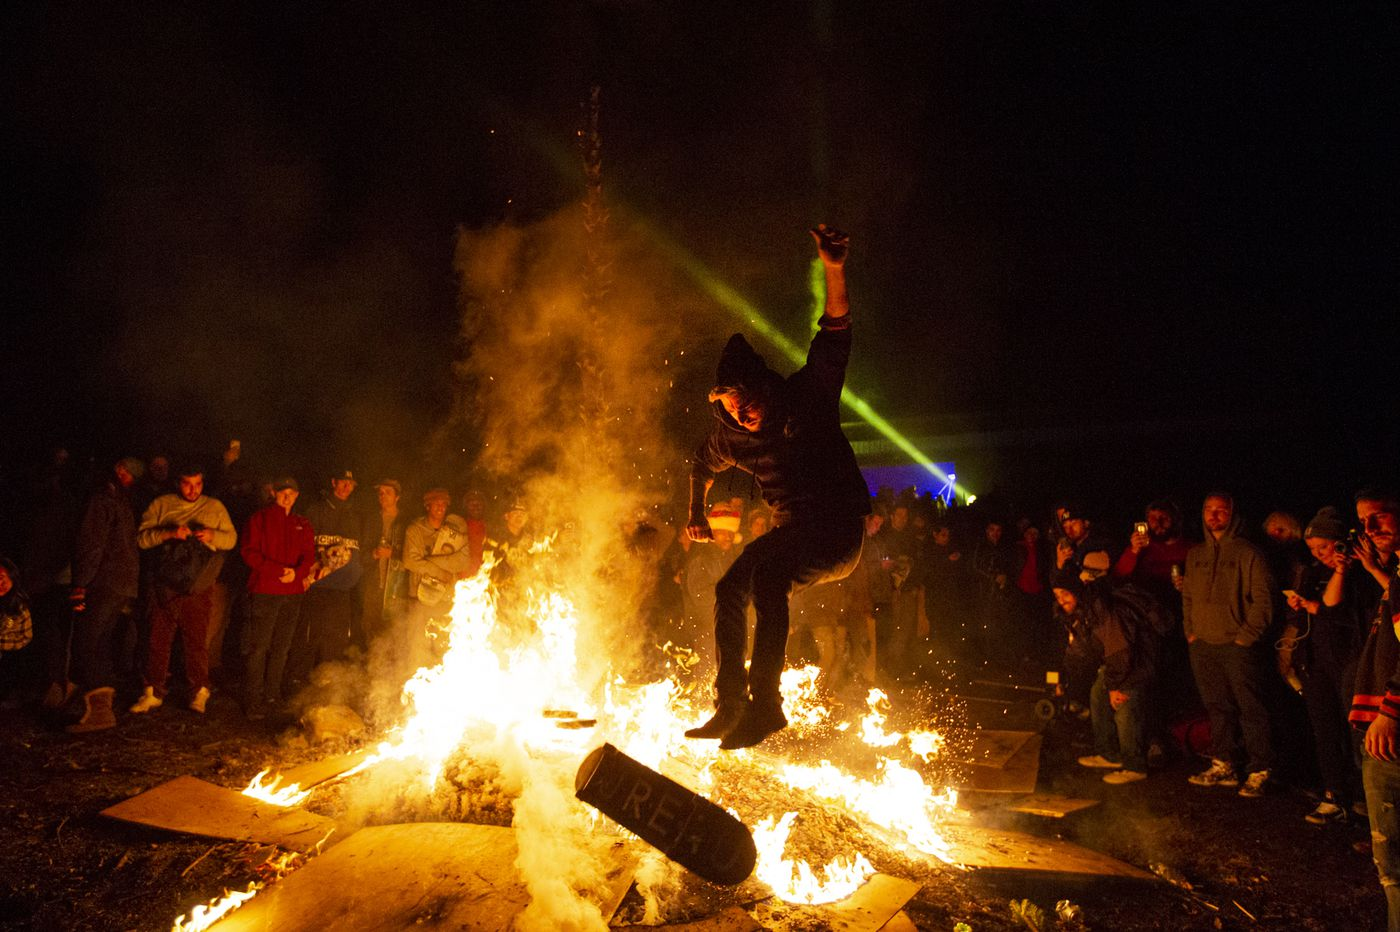 I went to Bam Margera's massive blow out party at Castle Bam in West Chester